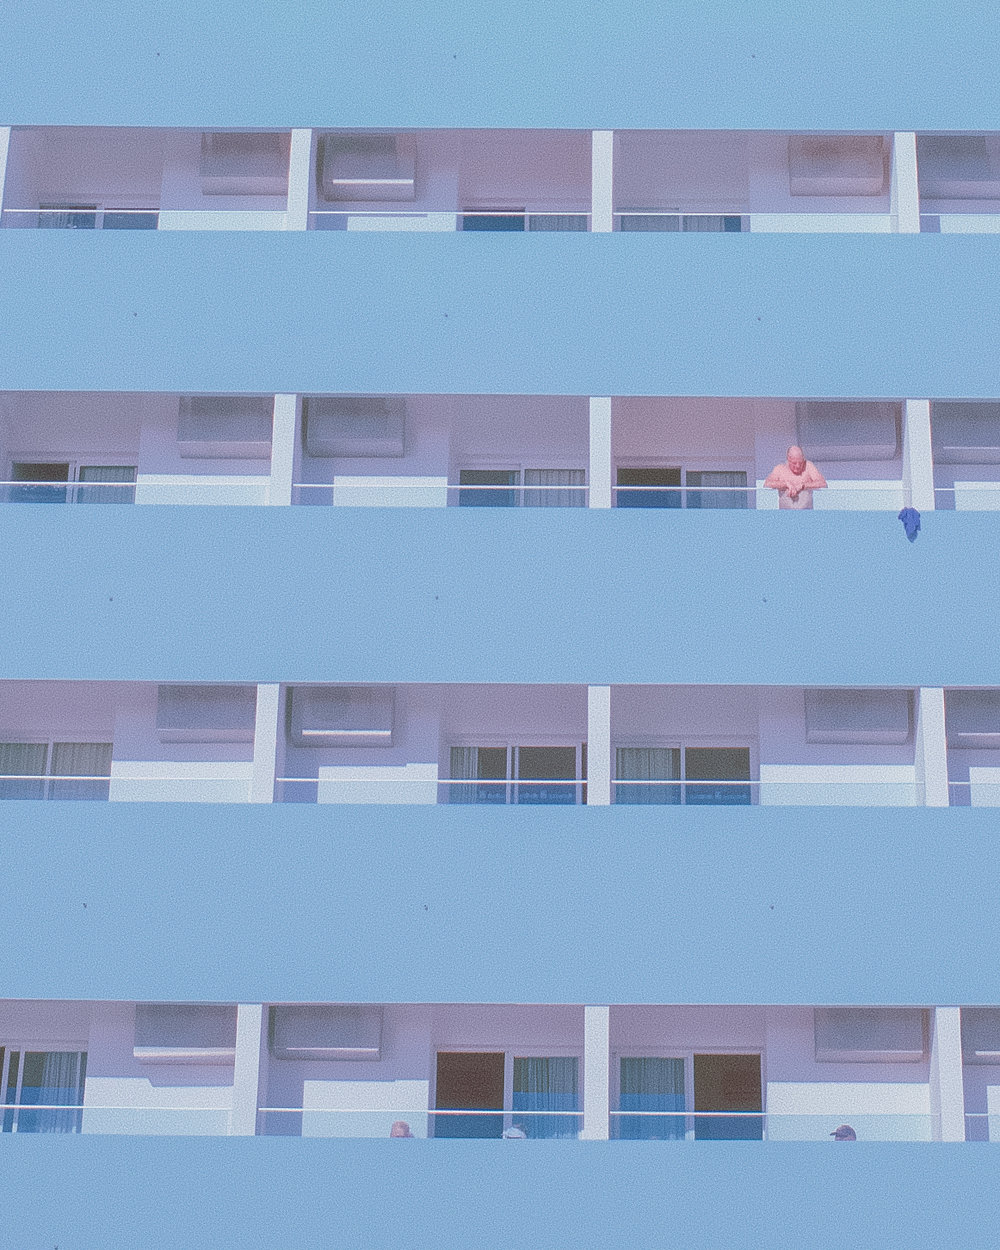 SUMMERTIME I, Hometown Series    Edition of /10 + 1 AP C-Print on Fujifilm Supreme Lustre Signed and numbered by the artist 29.7 × 21 cm Algarve, Portugal, 2017